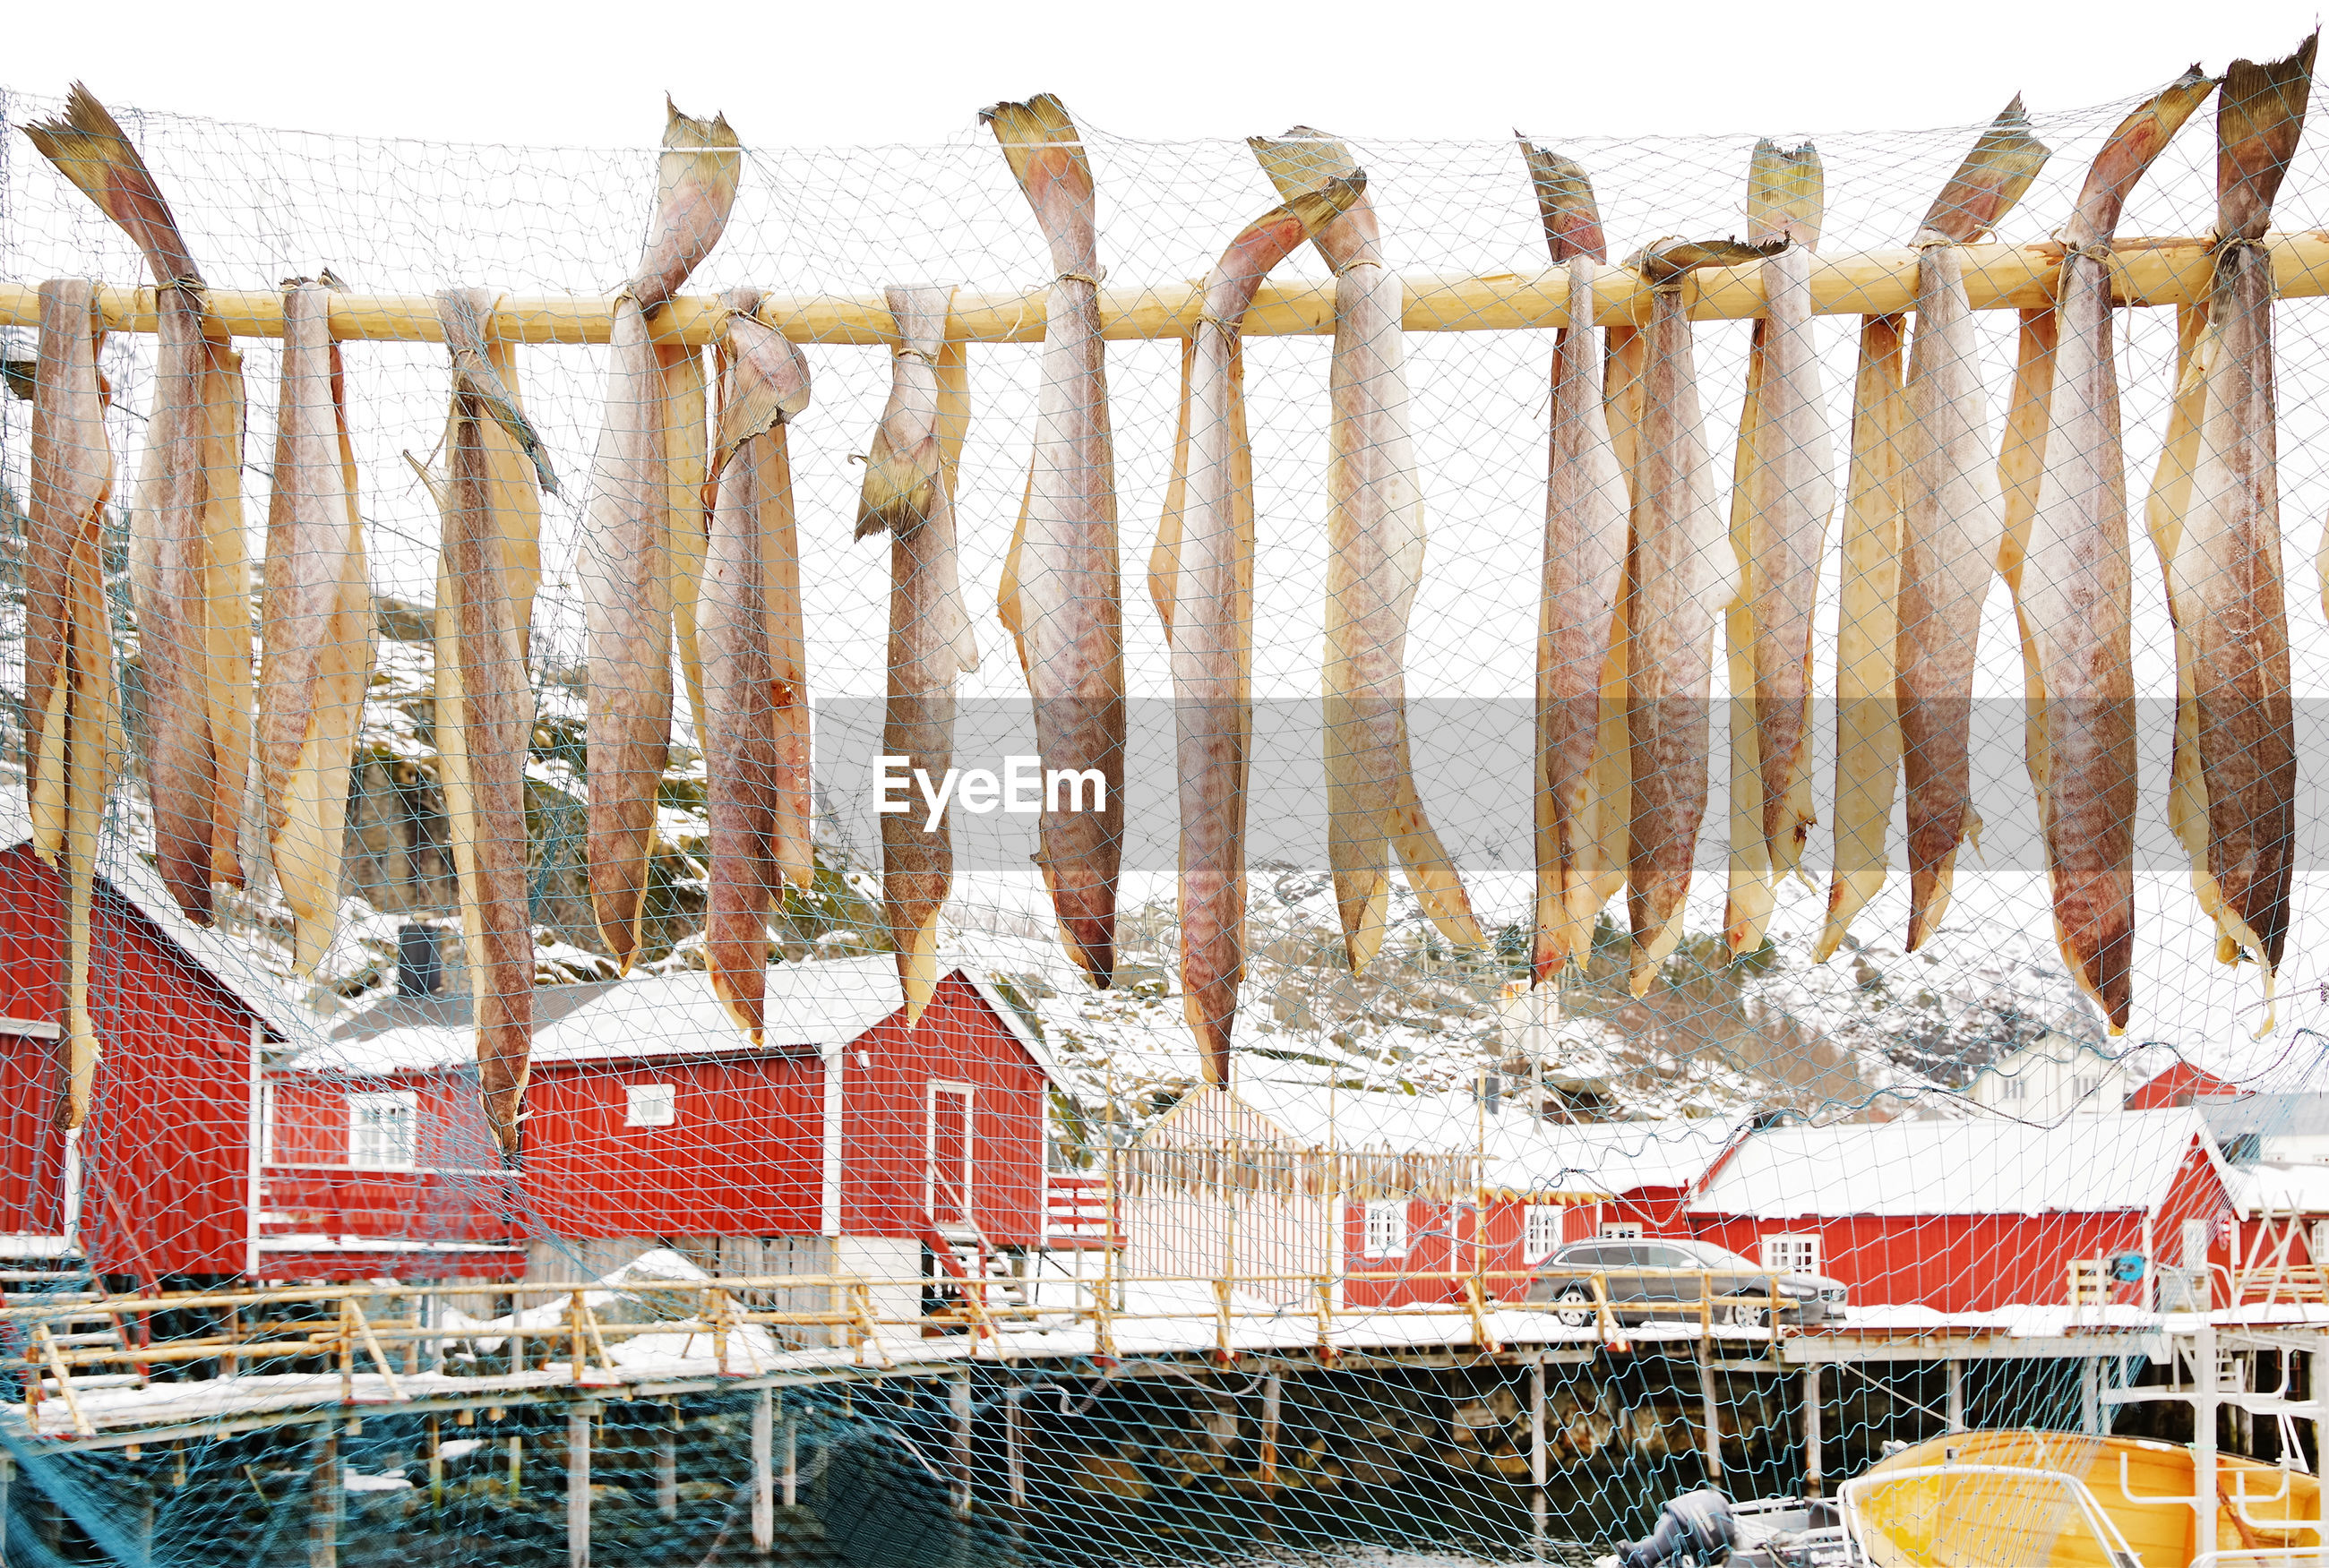 Fish drying on bamboo by fishing net